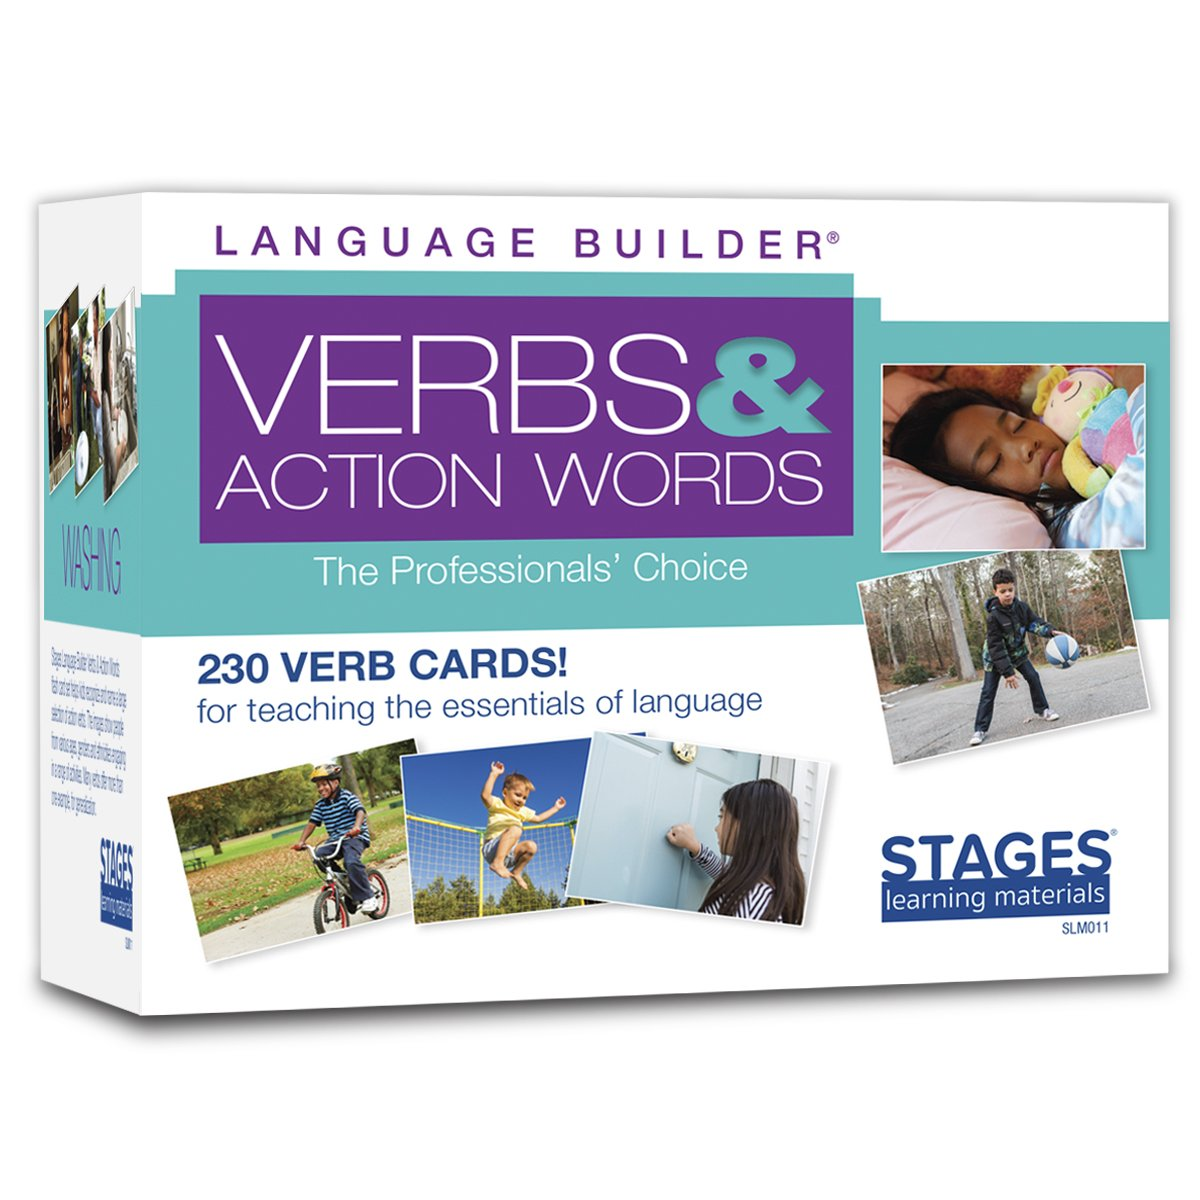 Stages Learning Materials Language Builder Verb Flash Cards Photo Vocabulary Autism Learning Products for Aba Therapy & Speech Articulation